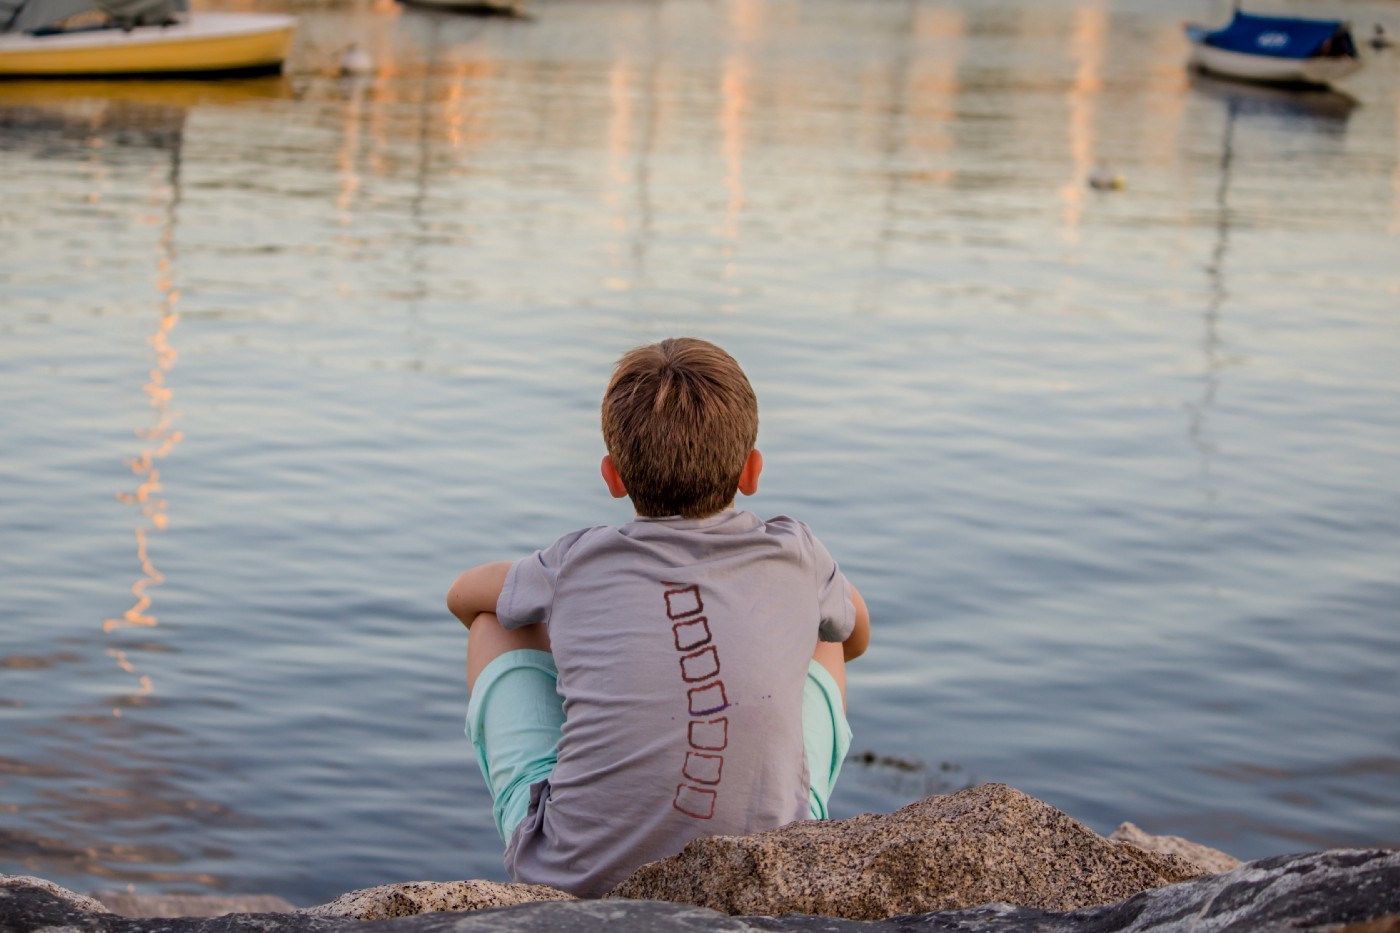 Young boy with scoliosis, sitting by the water.